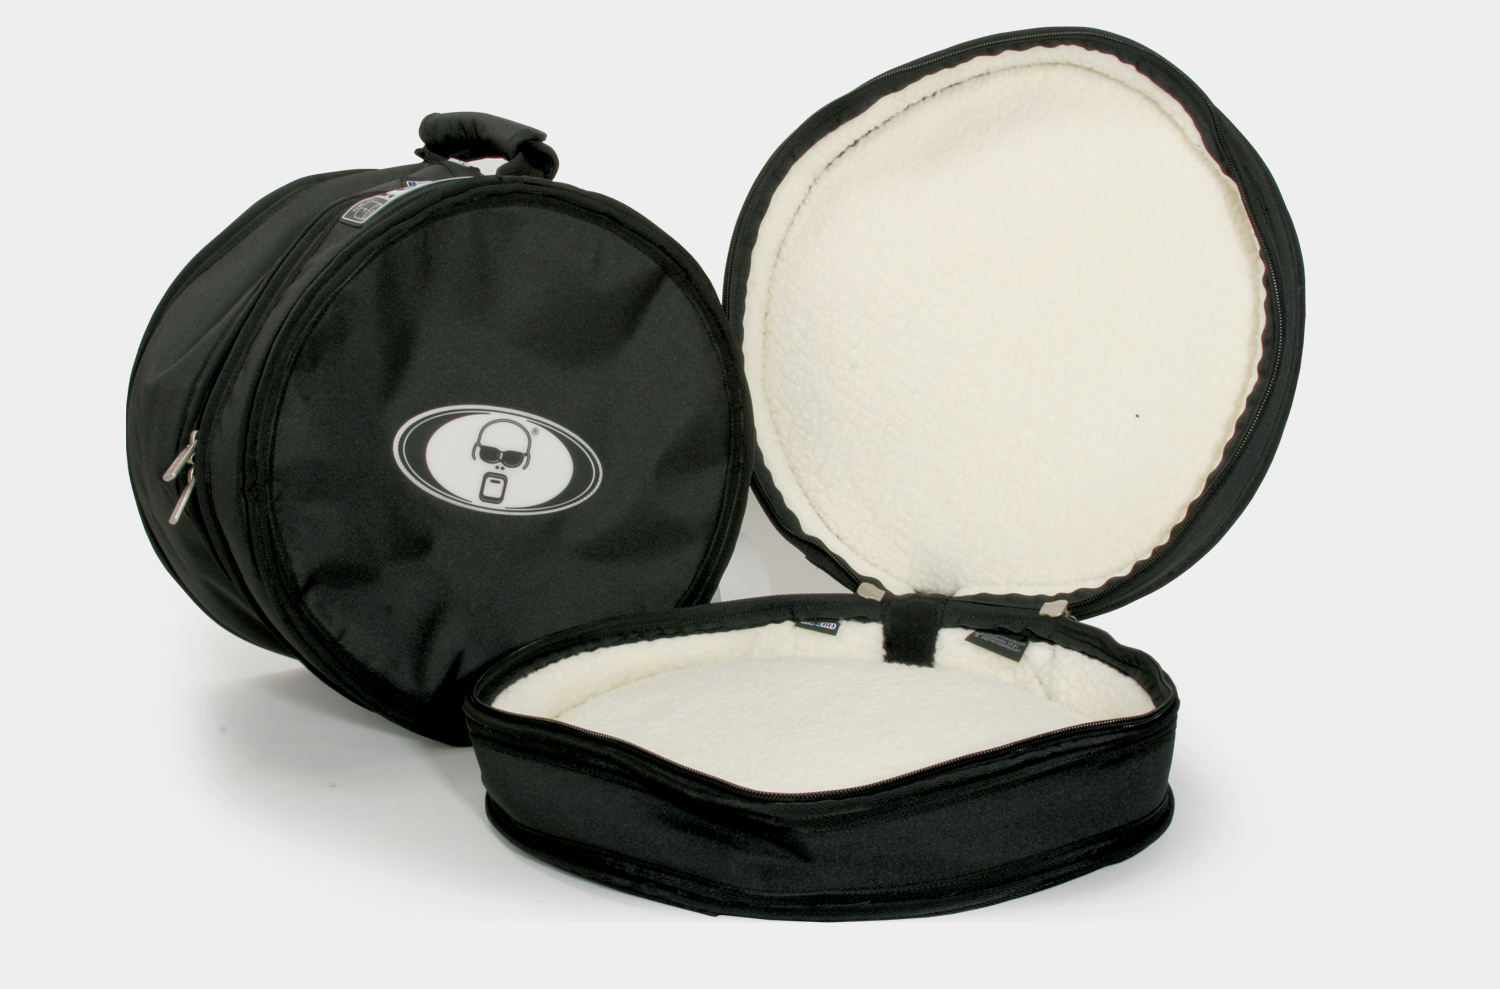 Protection Racket Bass Drum Bag 2022